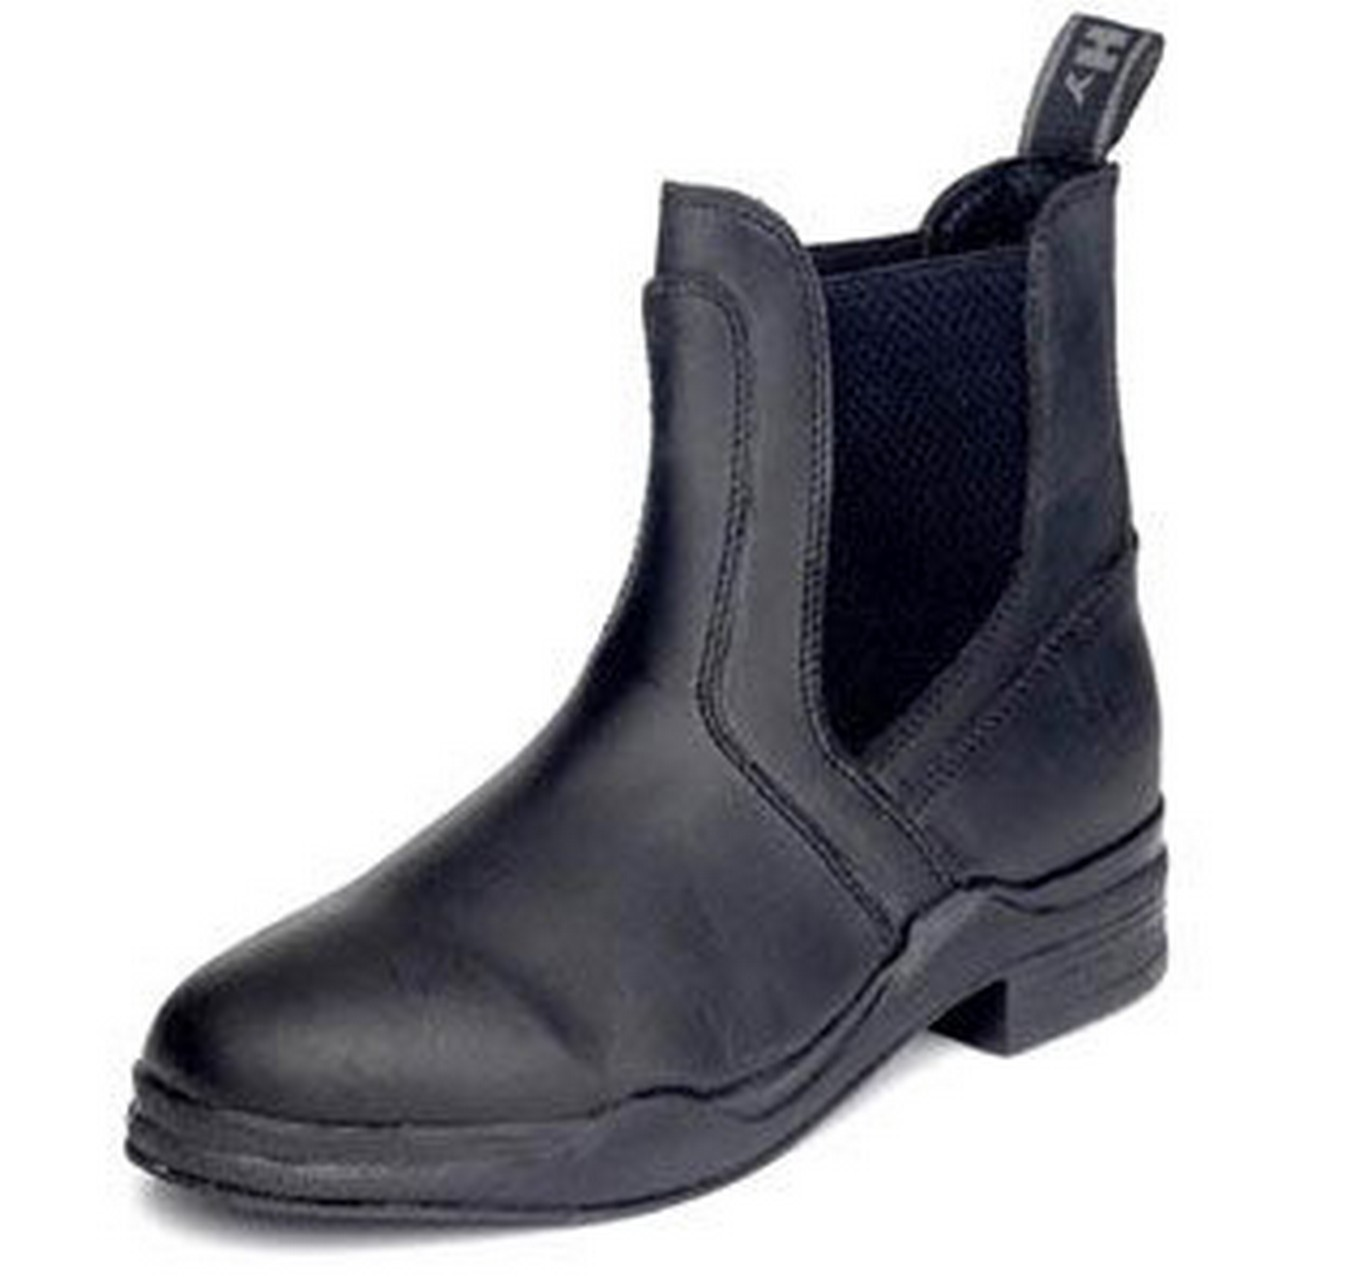 Leather Jodhpur Boot Black 7